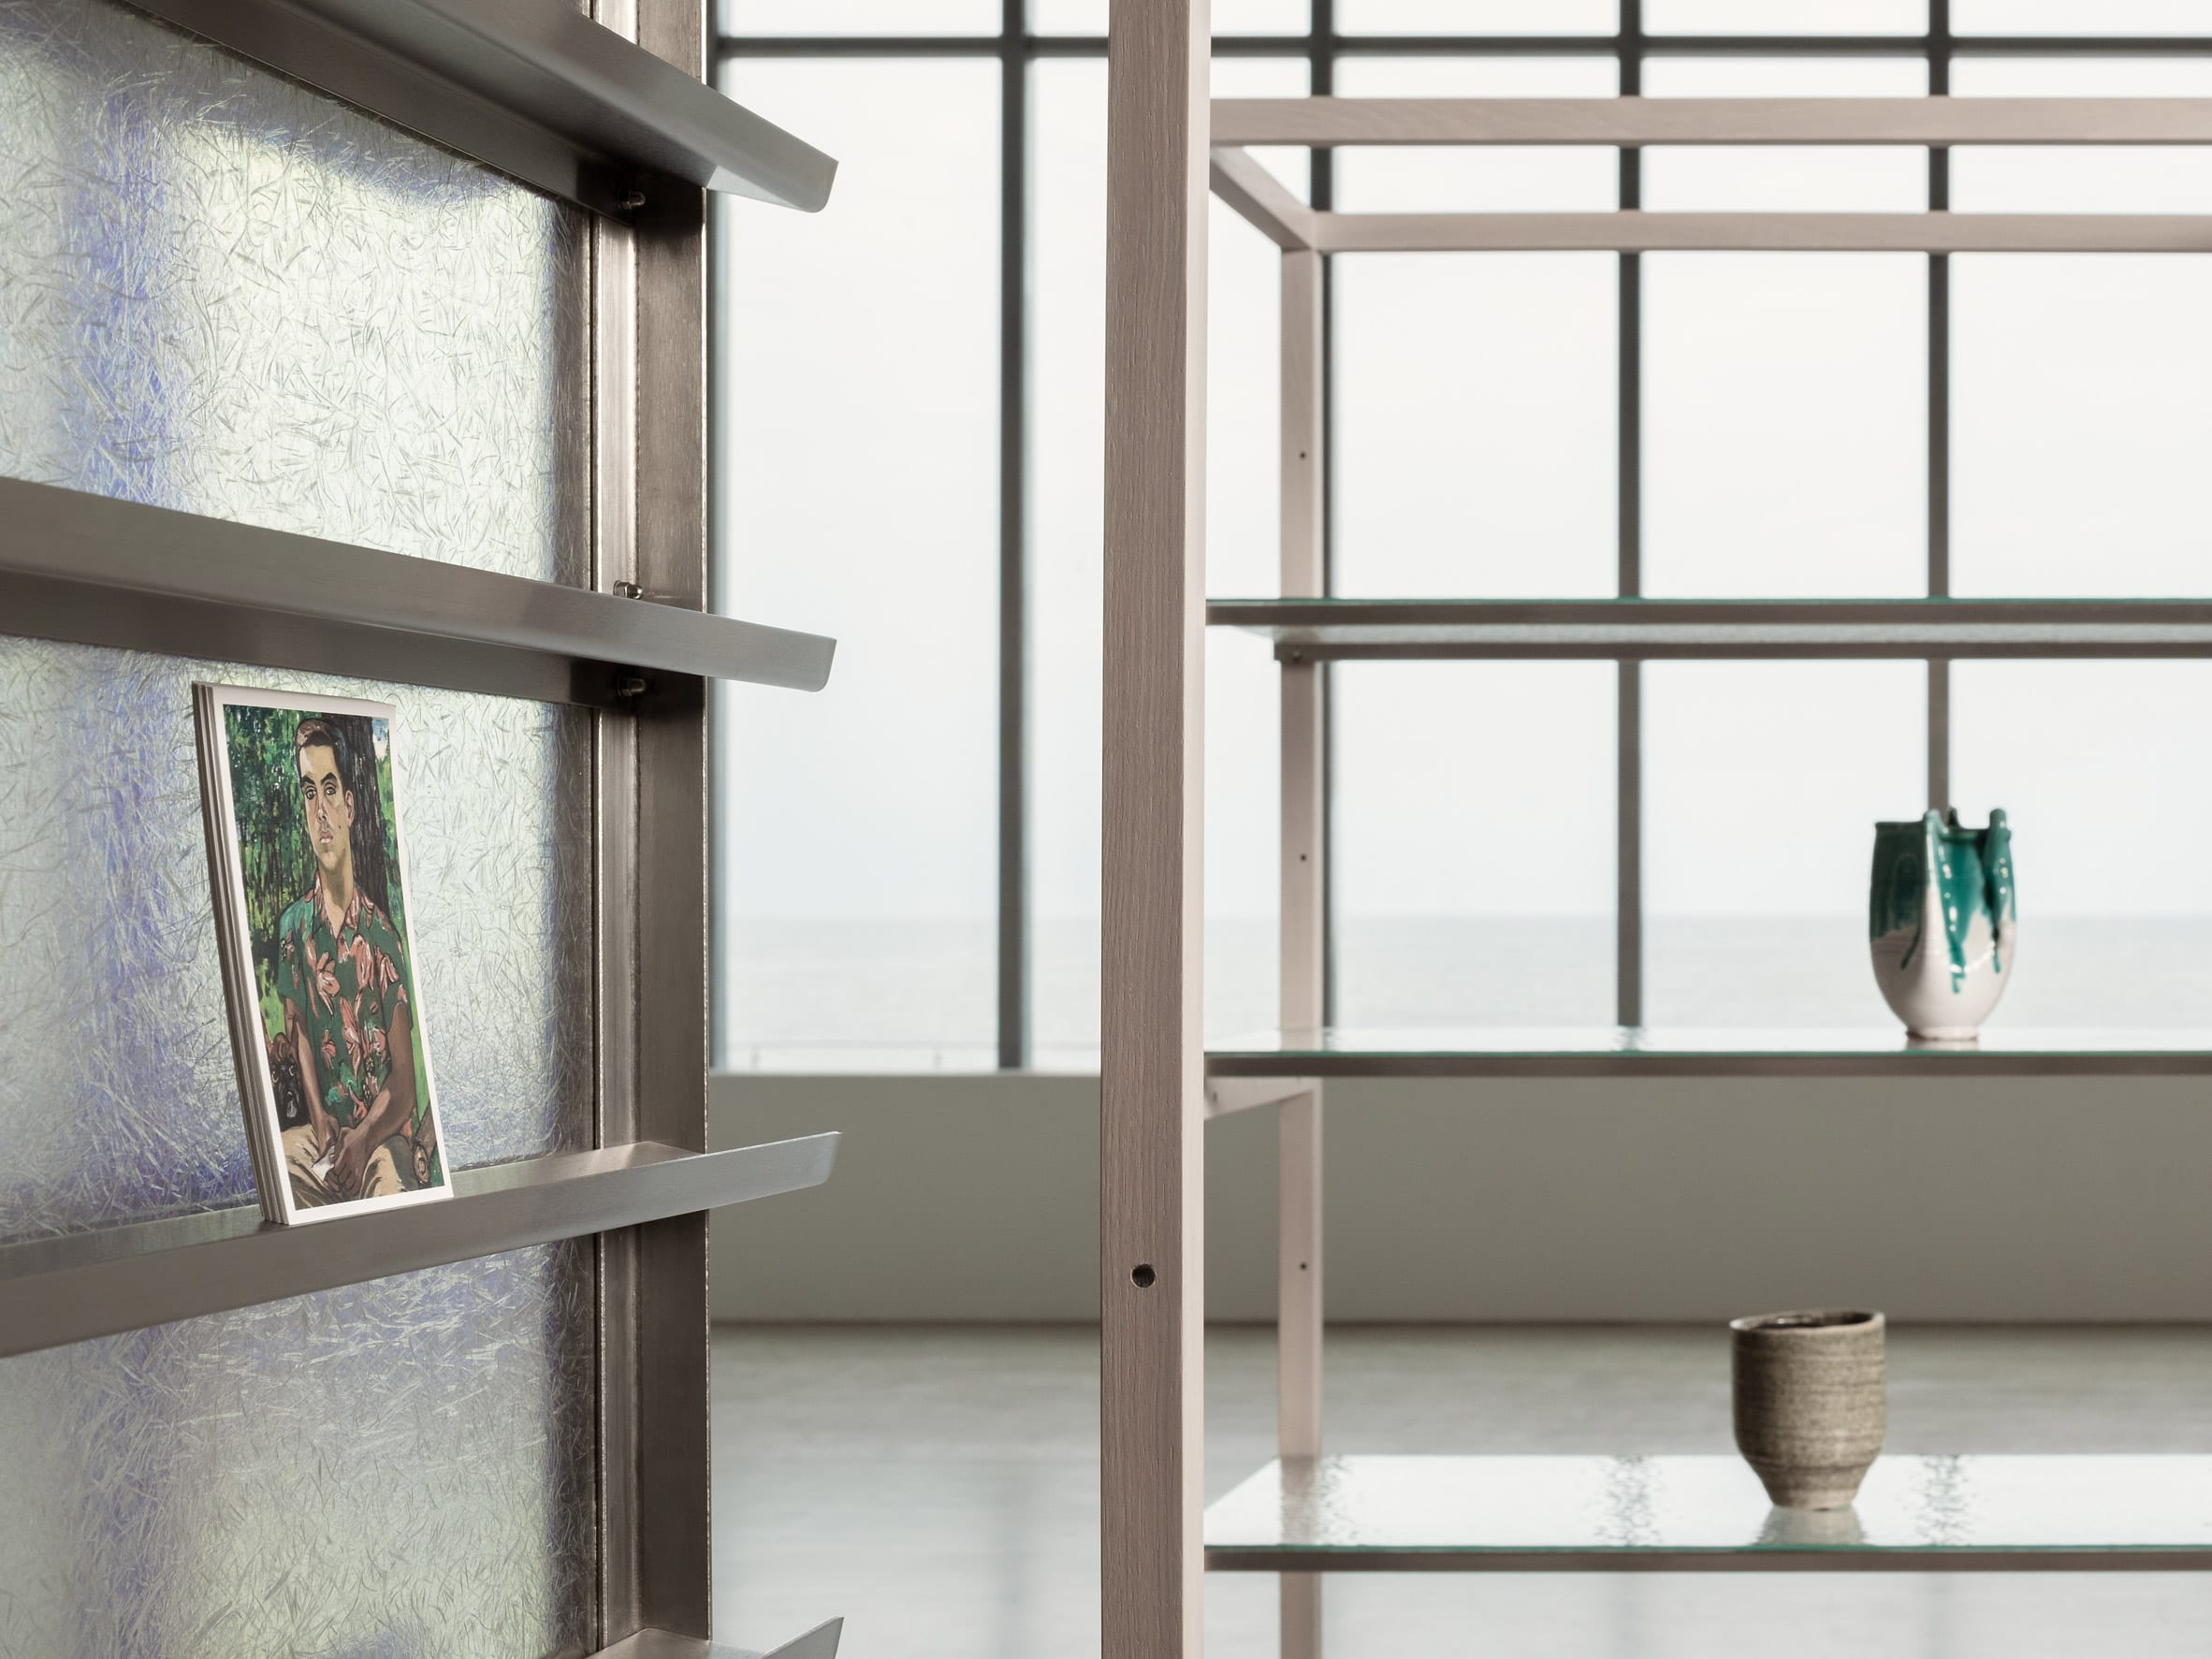 Fibreglass-backed shelf displaying artwork in Turner Contemporary Store